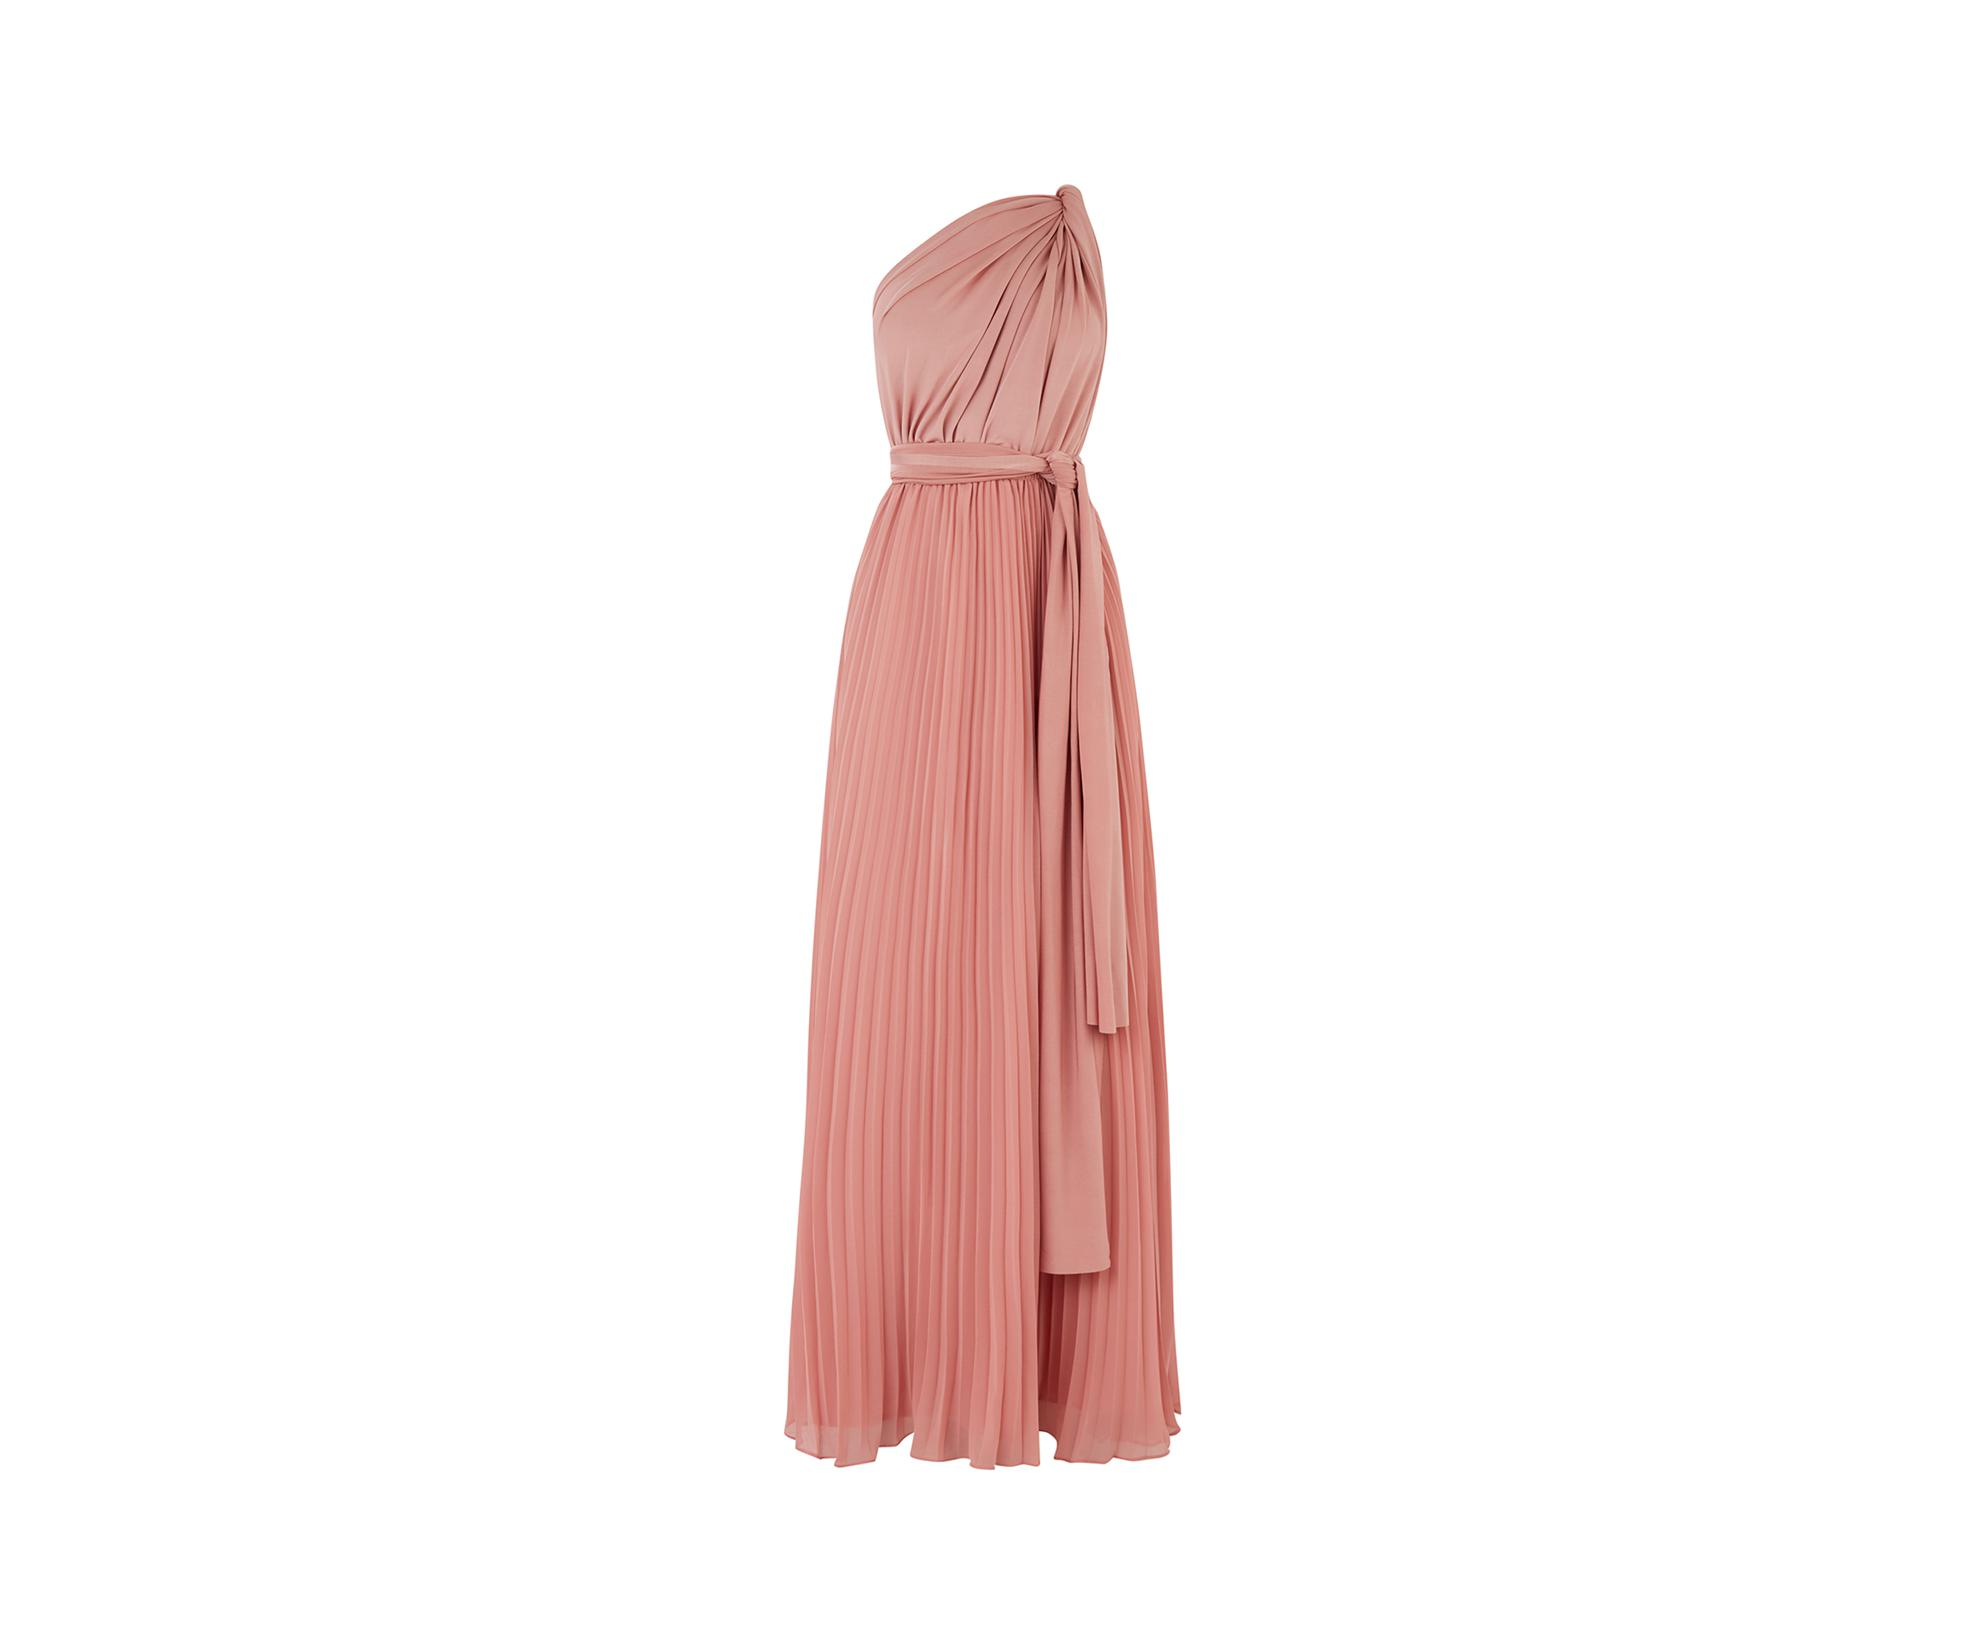 f306a48b19d Oasis - Pale Pink Wear It Your Way Pleated Maxi Dress - Lyst. View  fullscreen